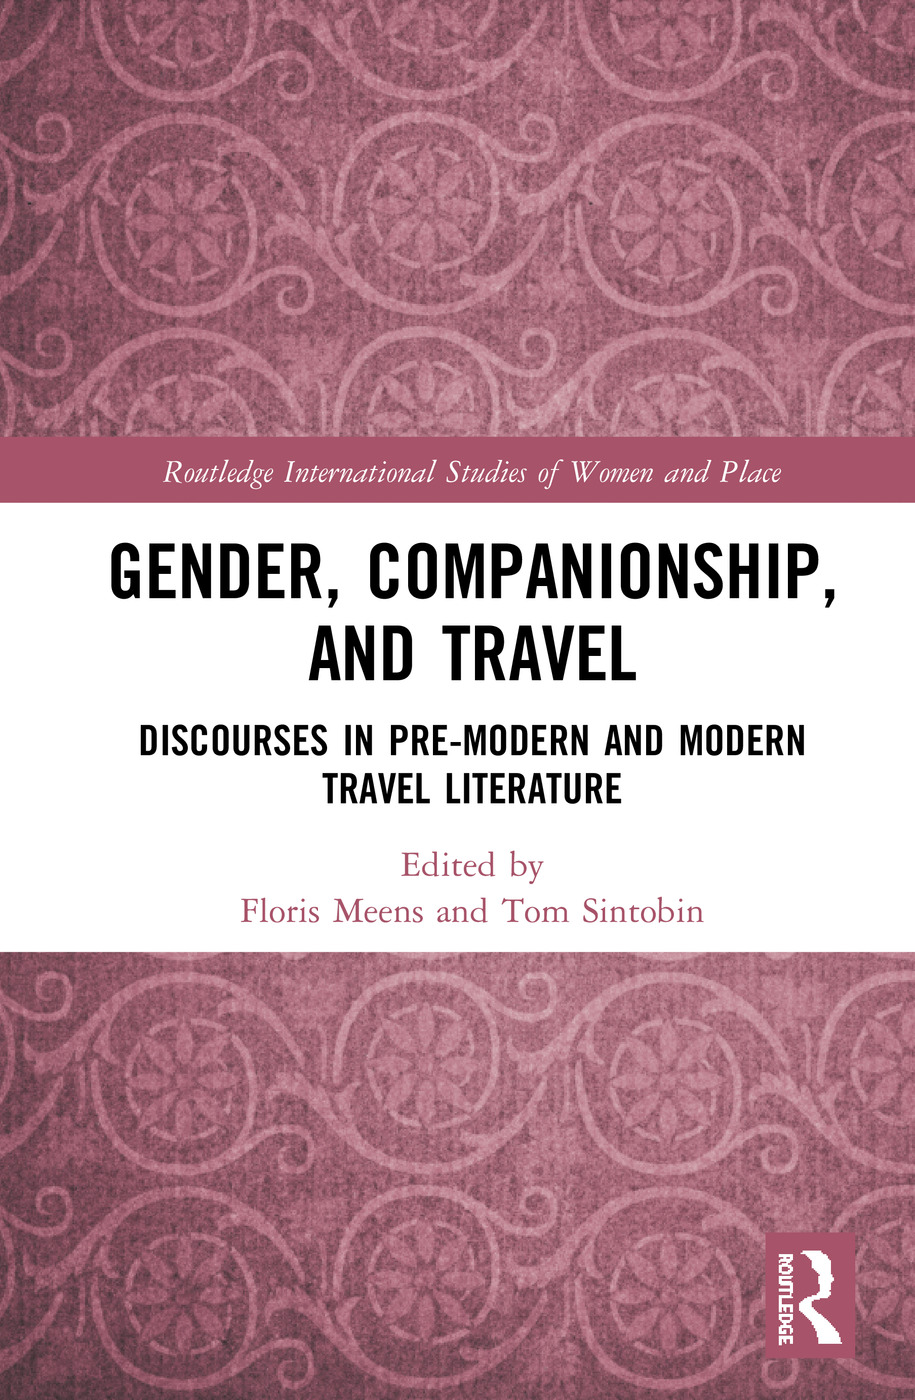 Gender, Companionship and Travel: Discourses in Pre-modern and Modern Travel Literature book cover